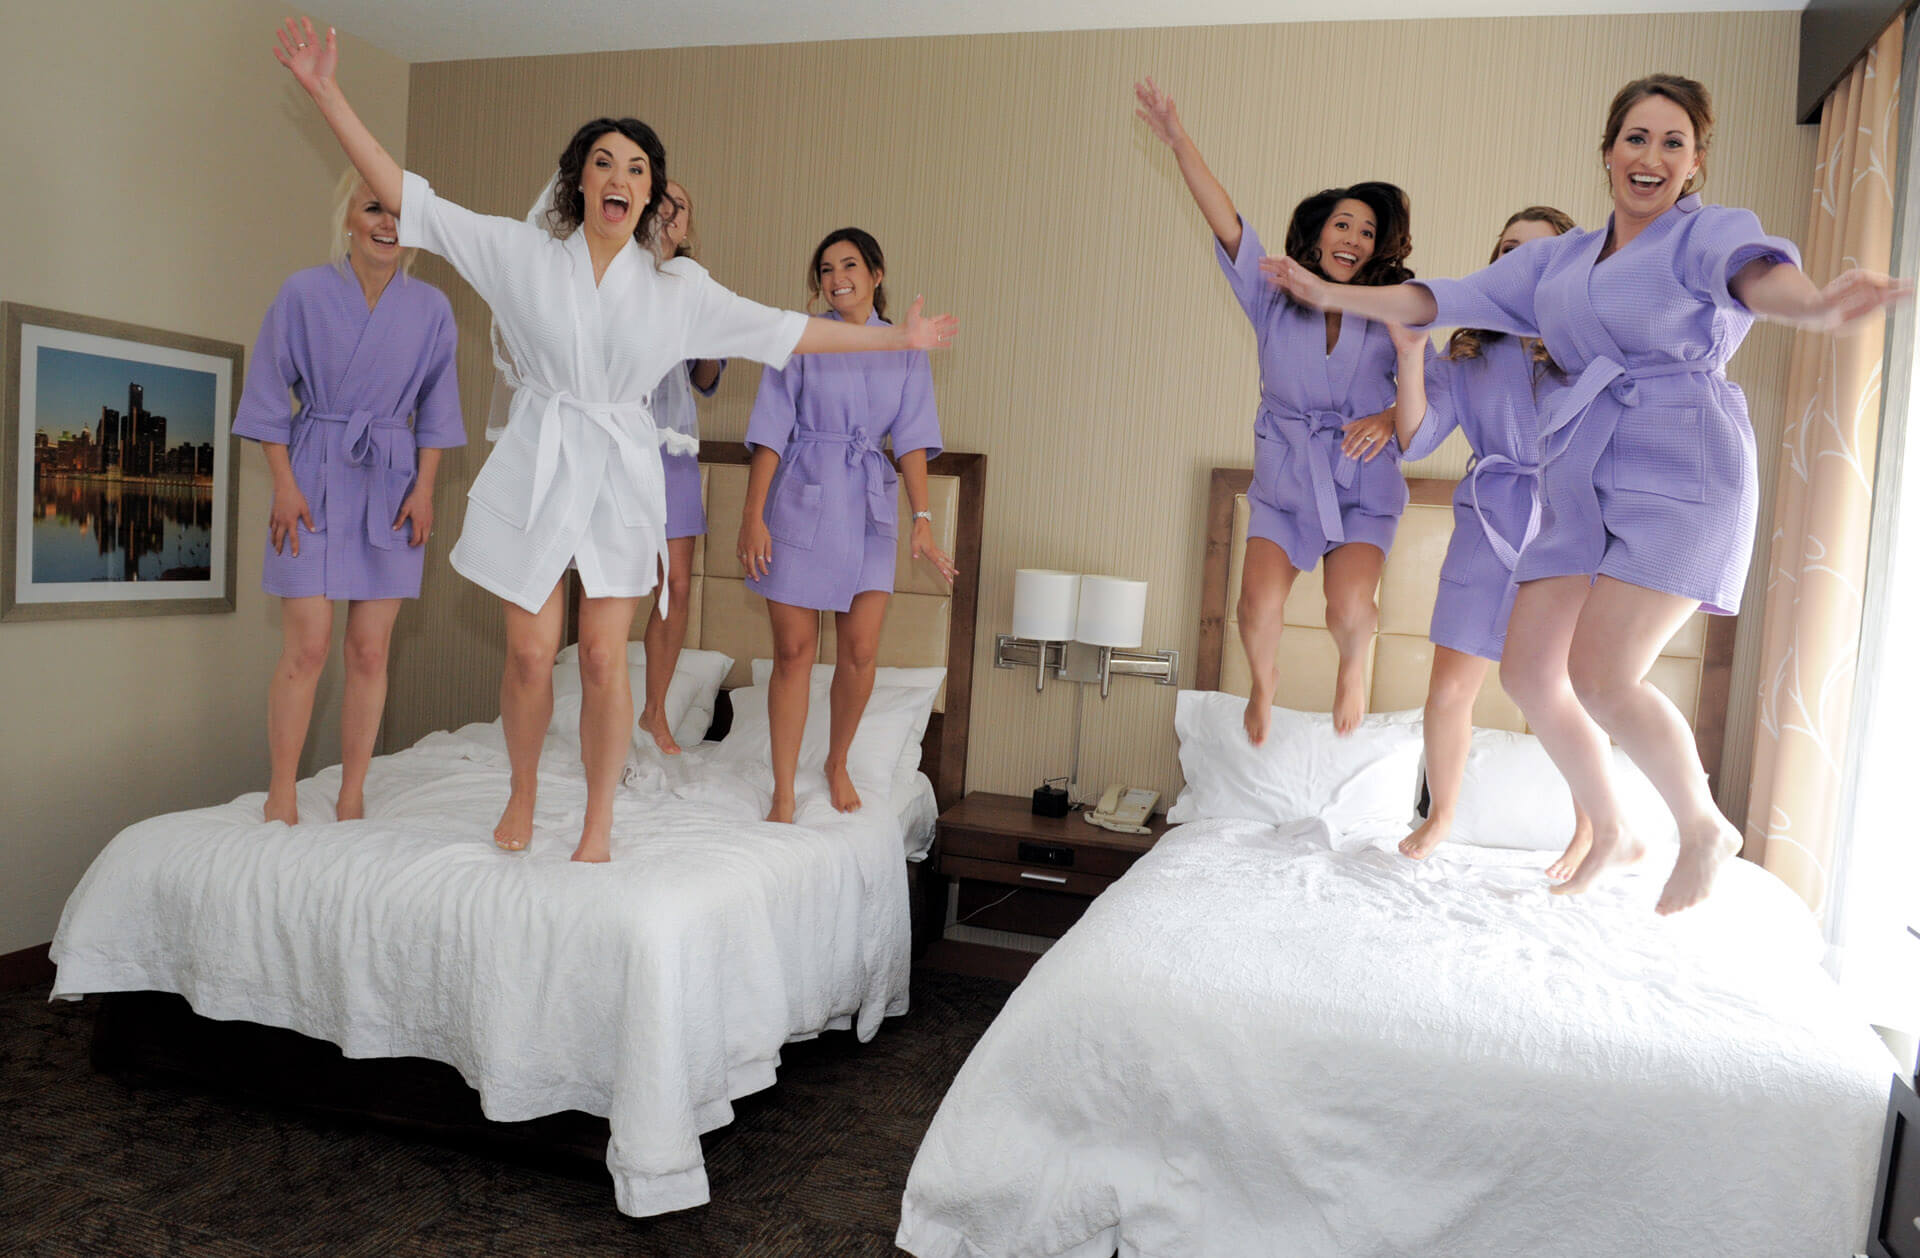 Epic Wedding portrait showing the bride and her wedding party jumping on the beds at their hotel in Metro Detroit, Michigan.